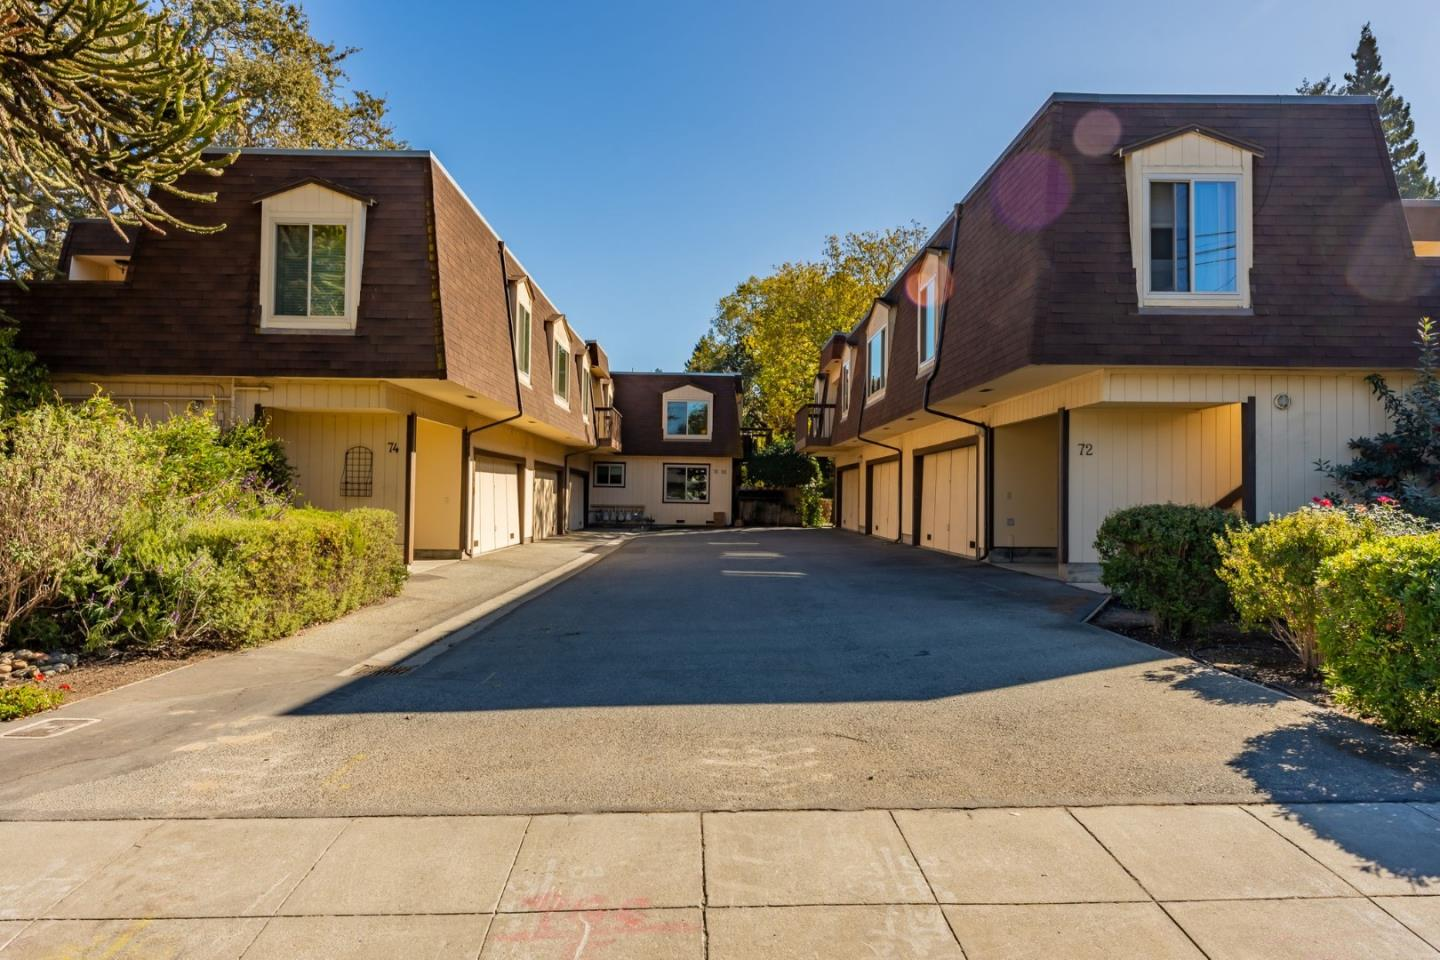 Beautiful and spacious 1,113 square foot condo located in Menlo Park.  Featuring 2 bedrooms, 2 bathrooms and an attached 2 car garage. Easy access to shopping centers, Parks and highways. Close to Google, Facebook and other high tech companies.